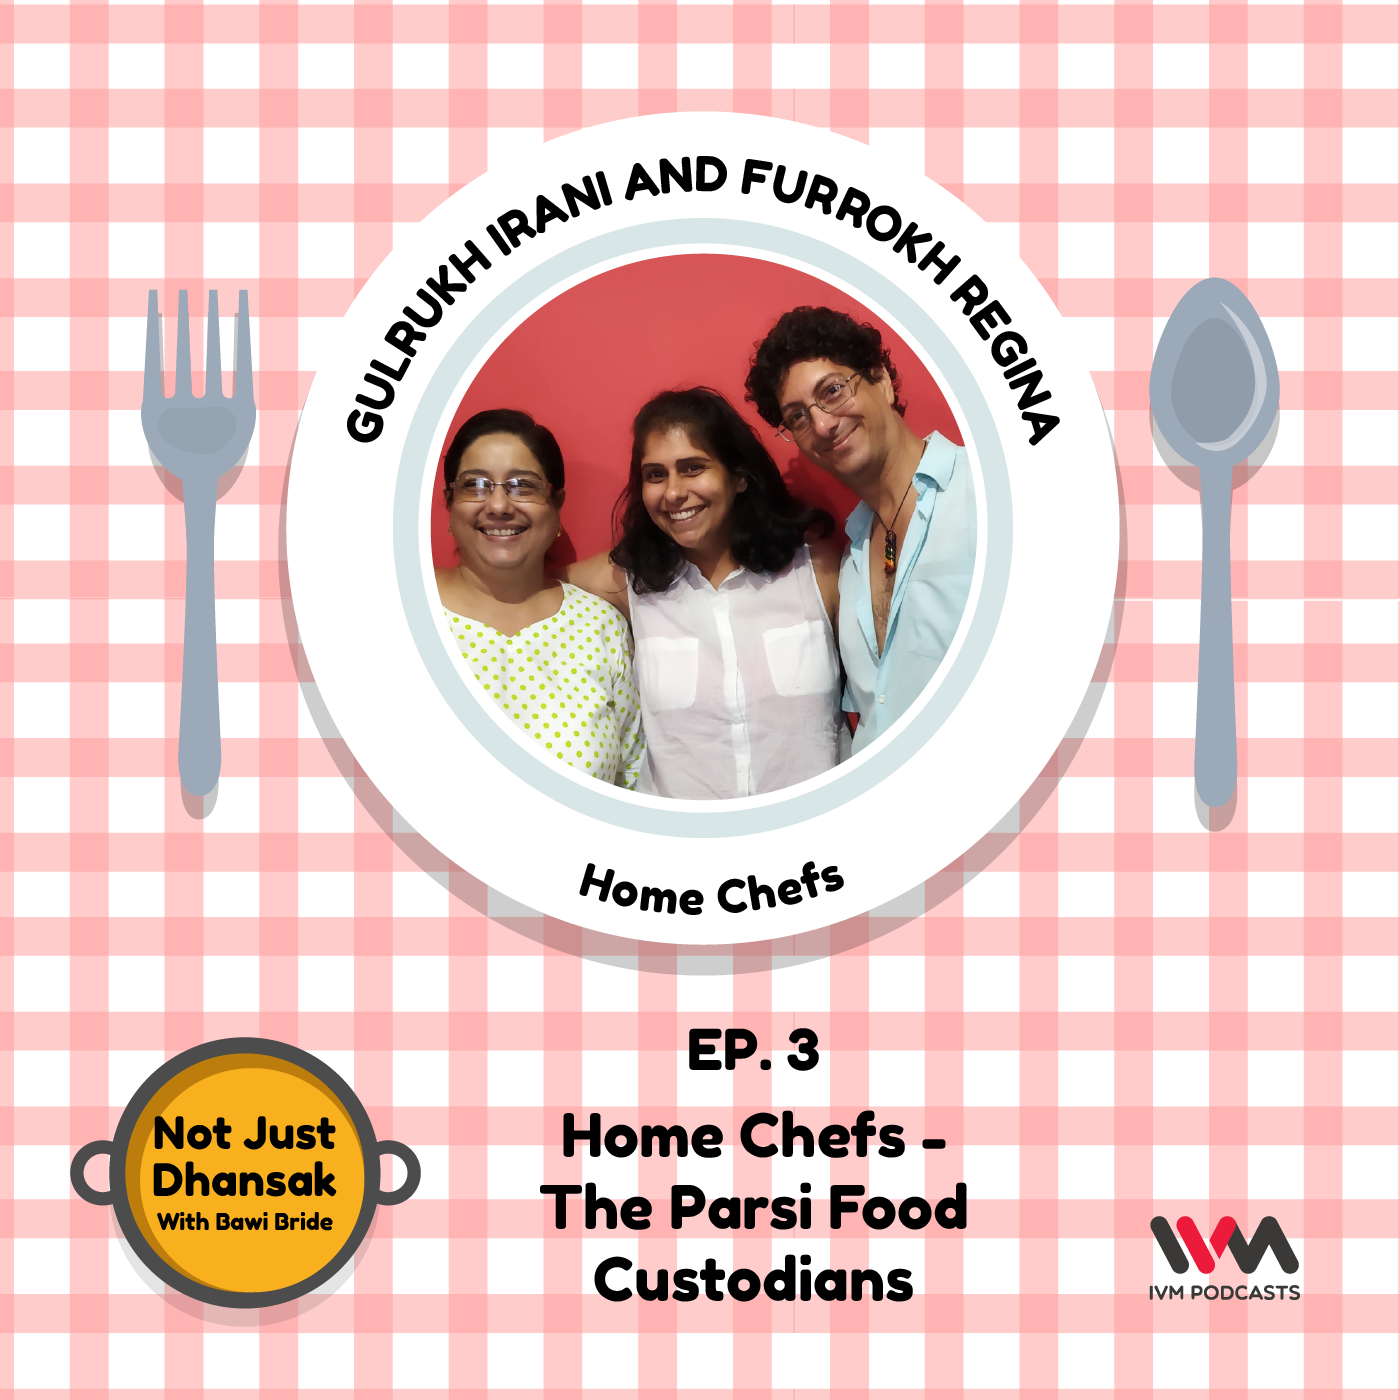 Ep. 03: Home Chefs - The Parsi Food Custodians